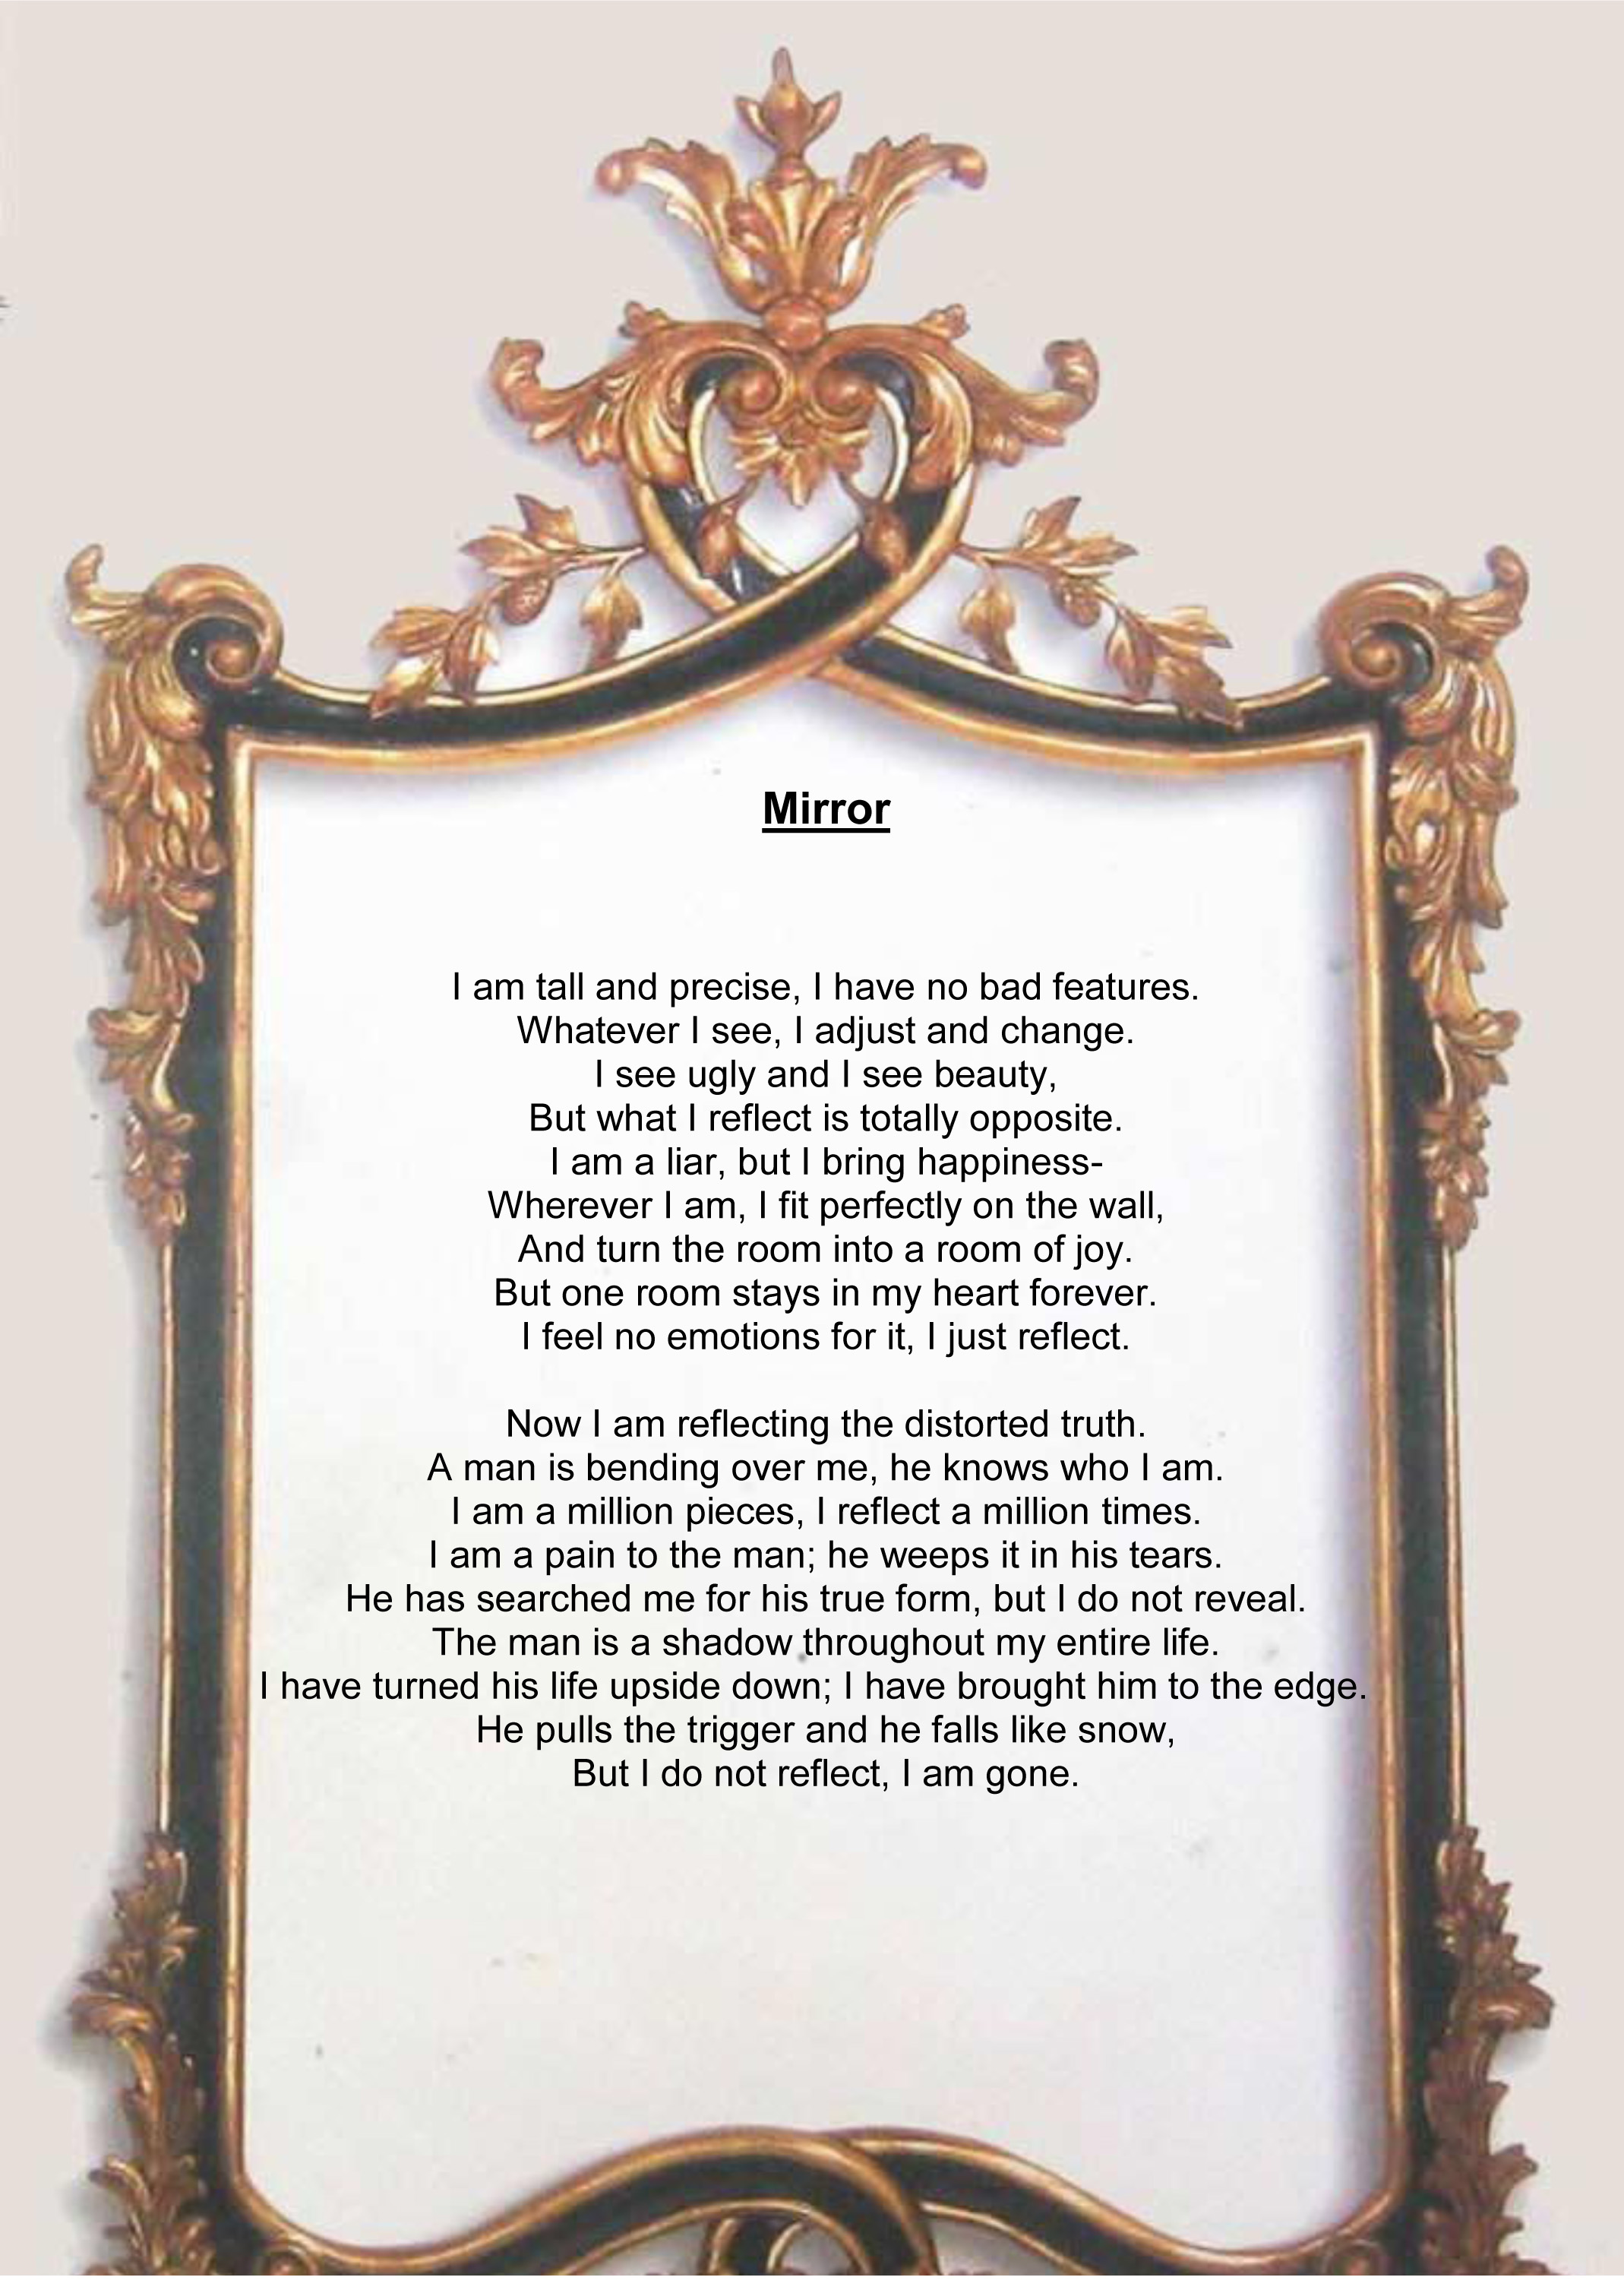 mirror by sylvia plath theme